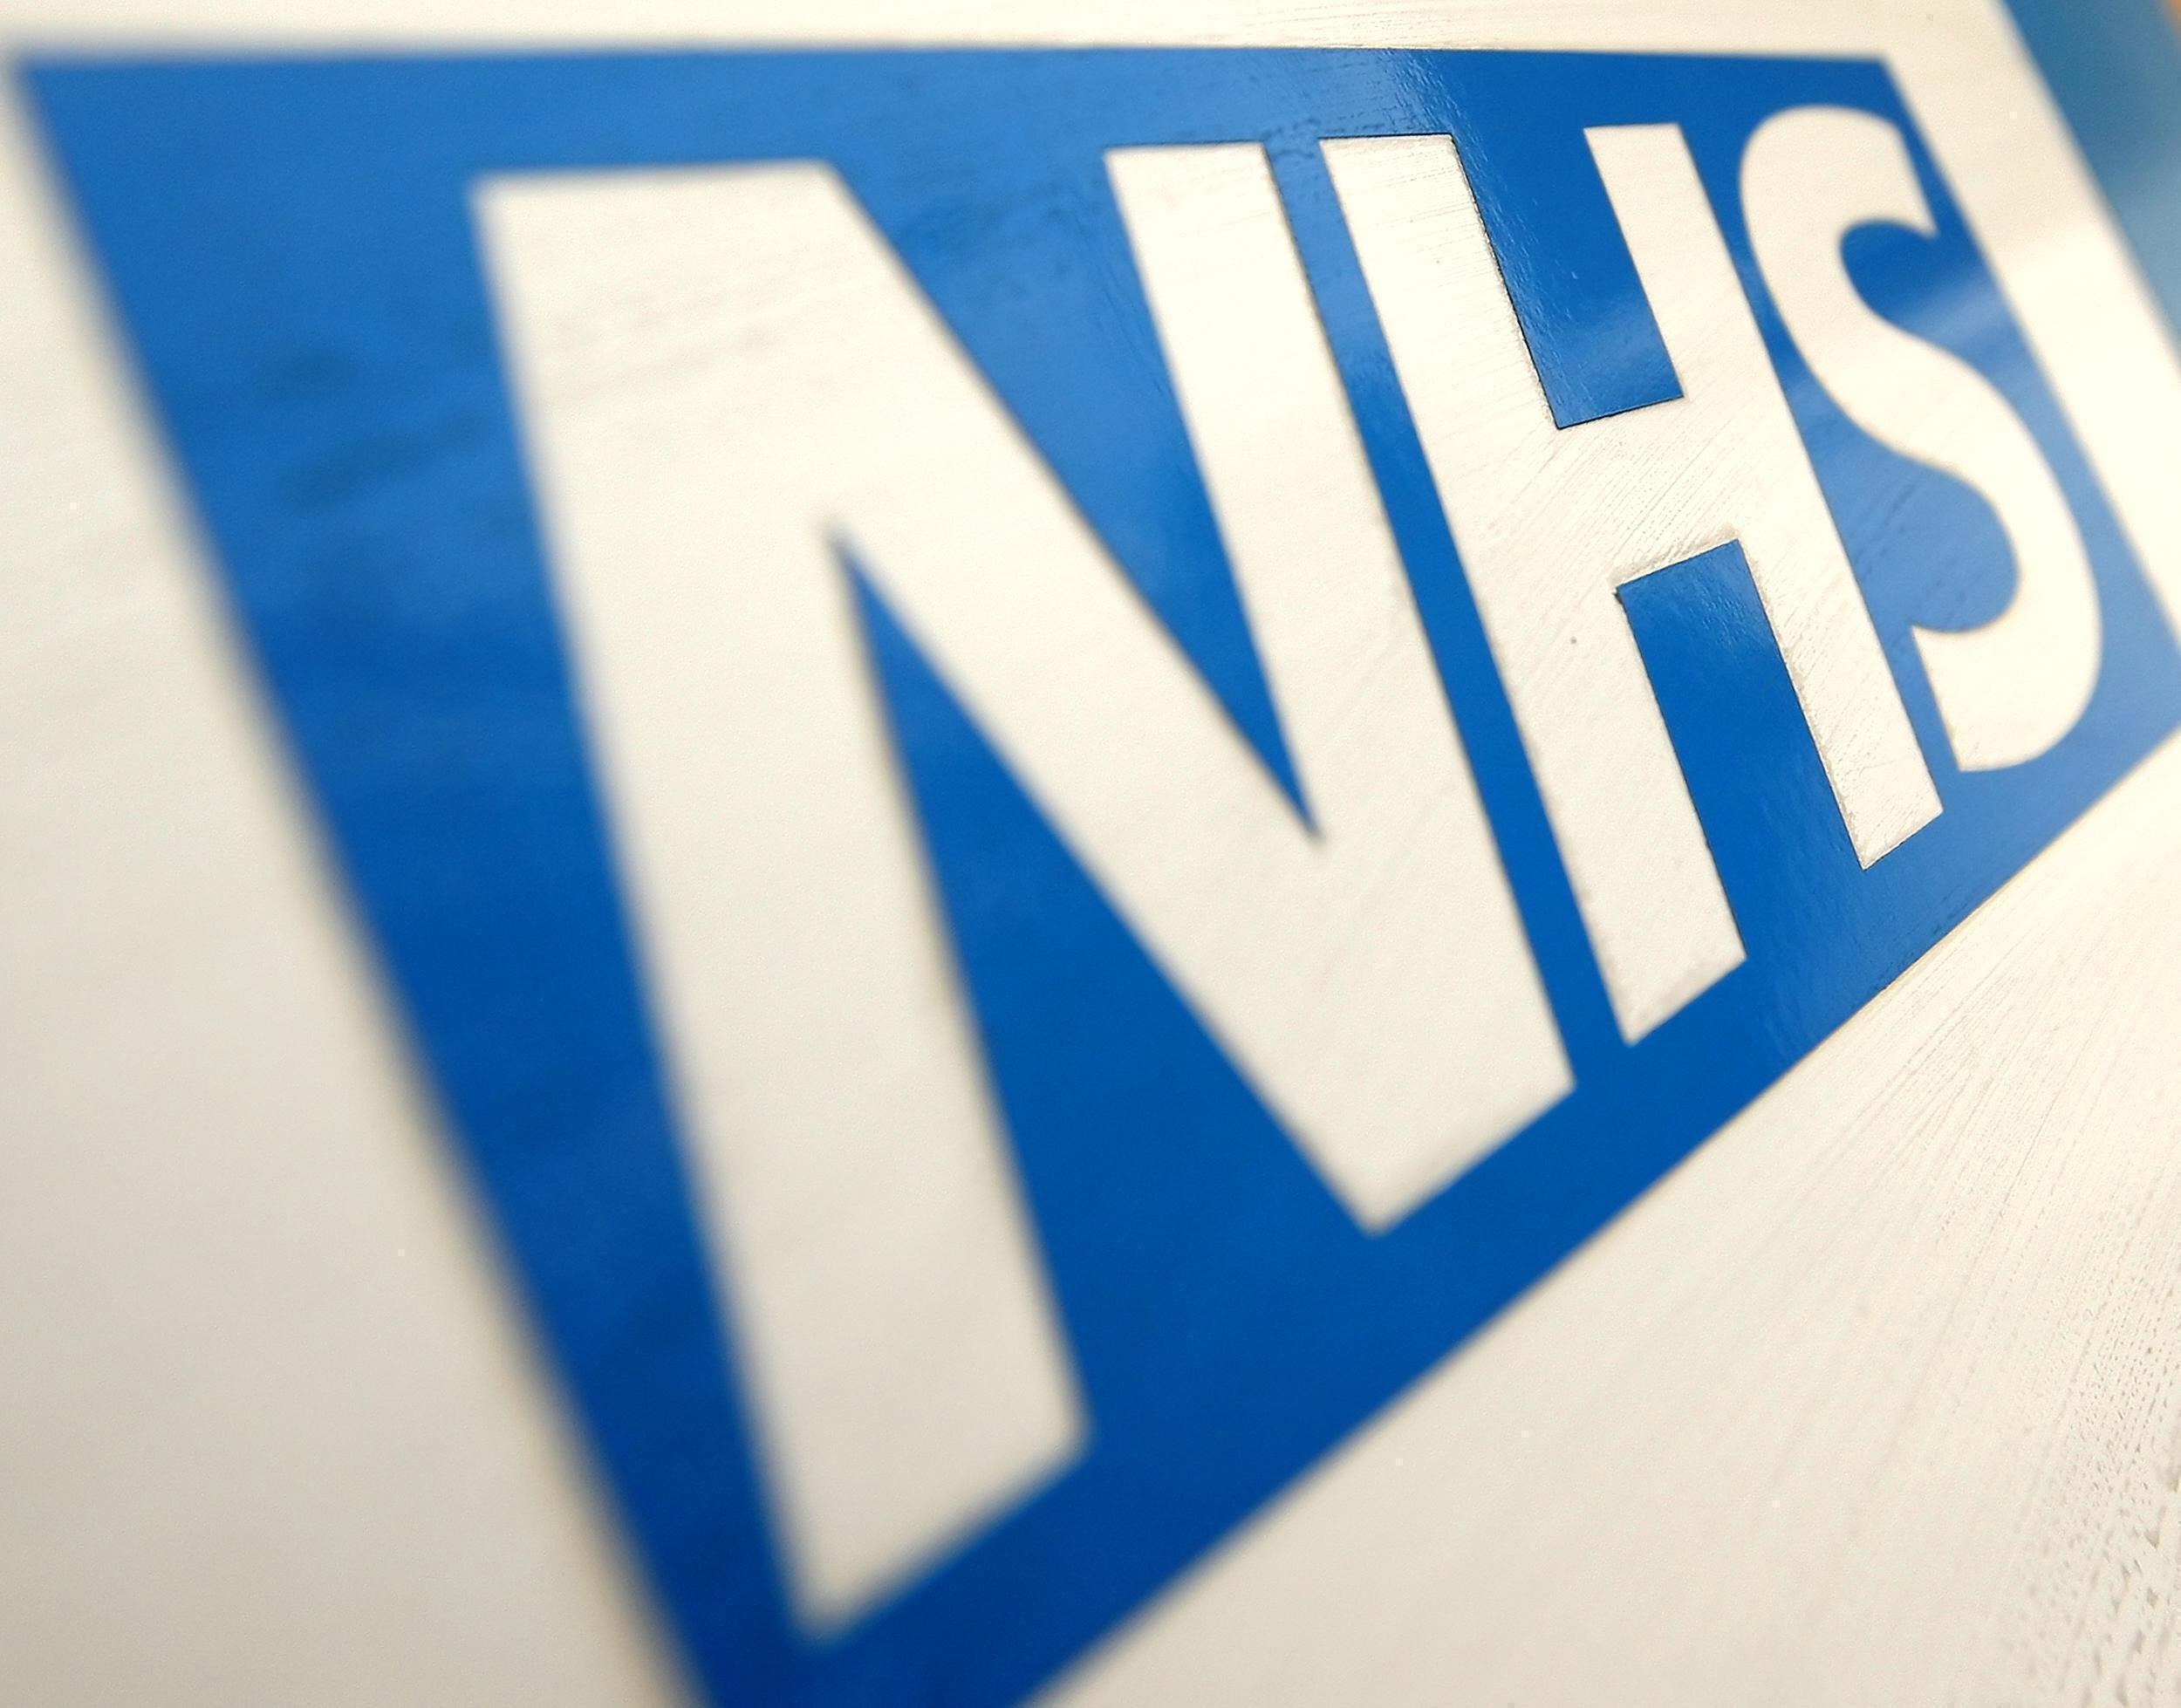 Forty-one per cent of GPs in favour of 'charging £25 for doctor's appointments'